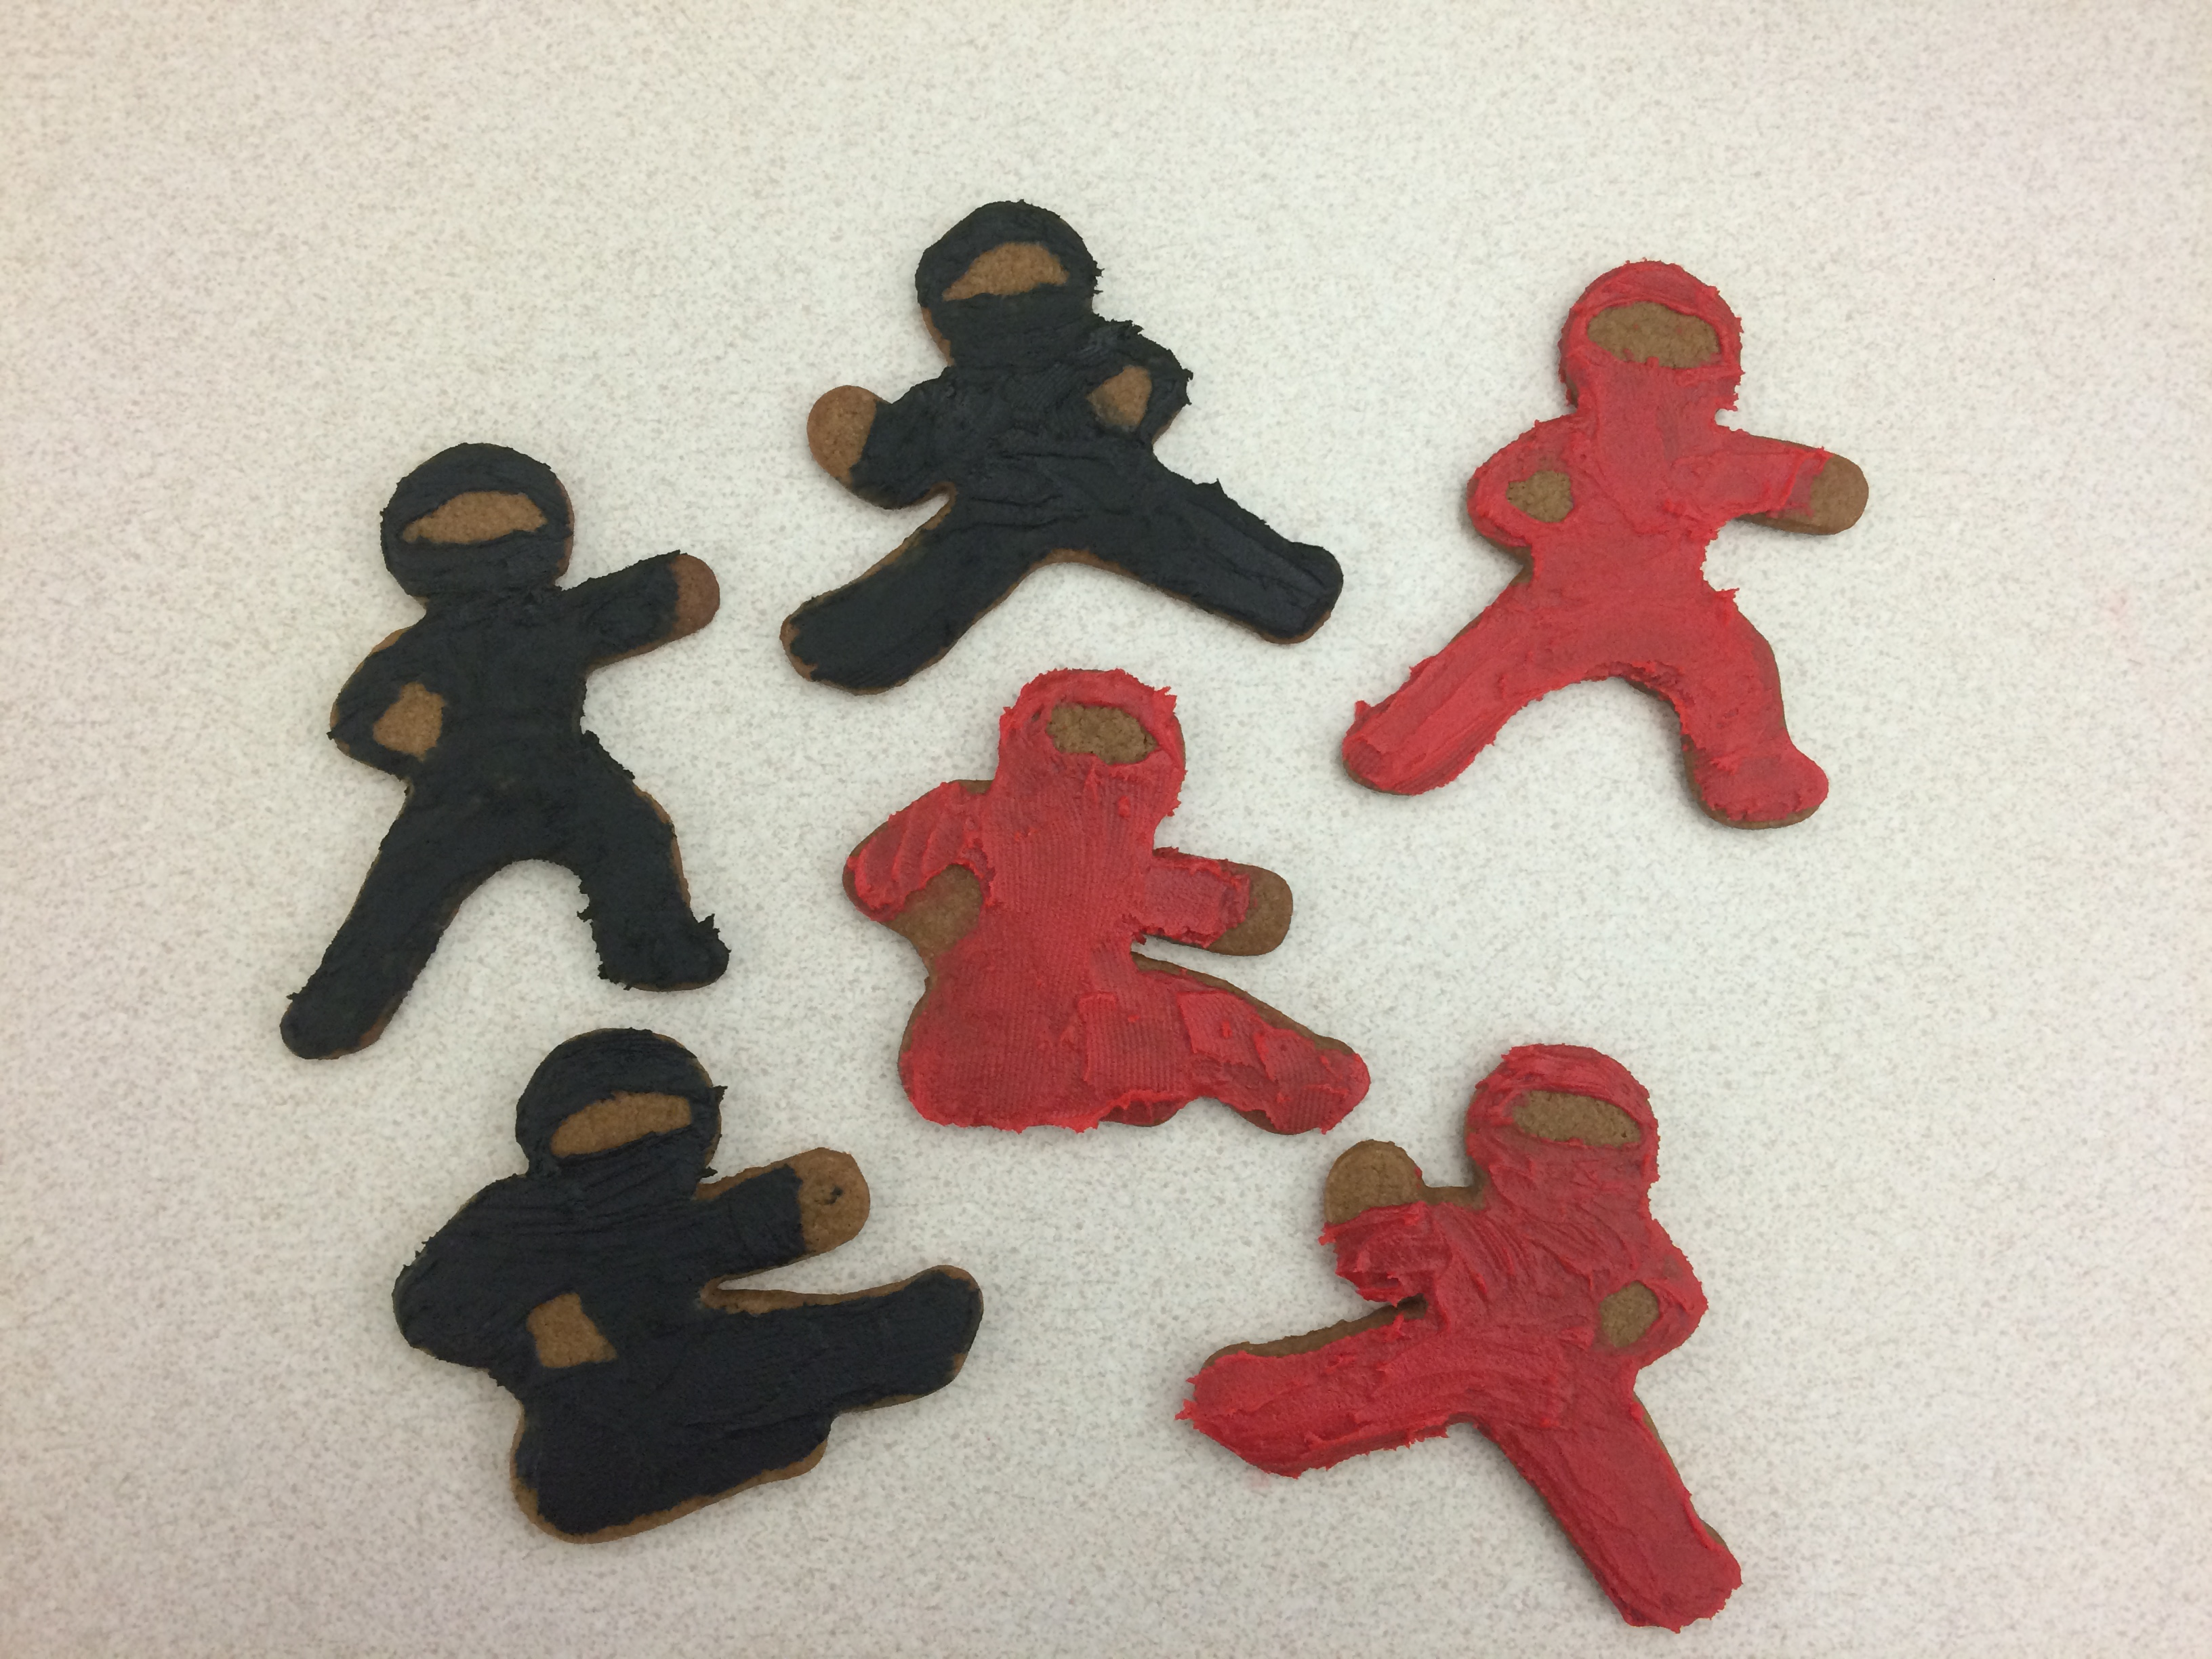 Iced Ninjabread Men Cookies